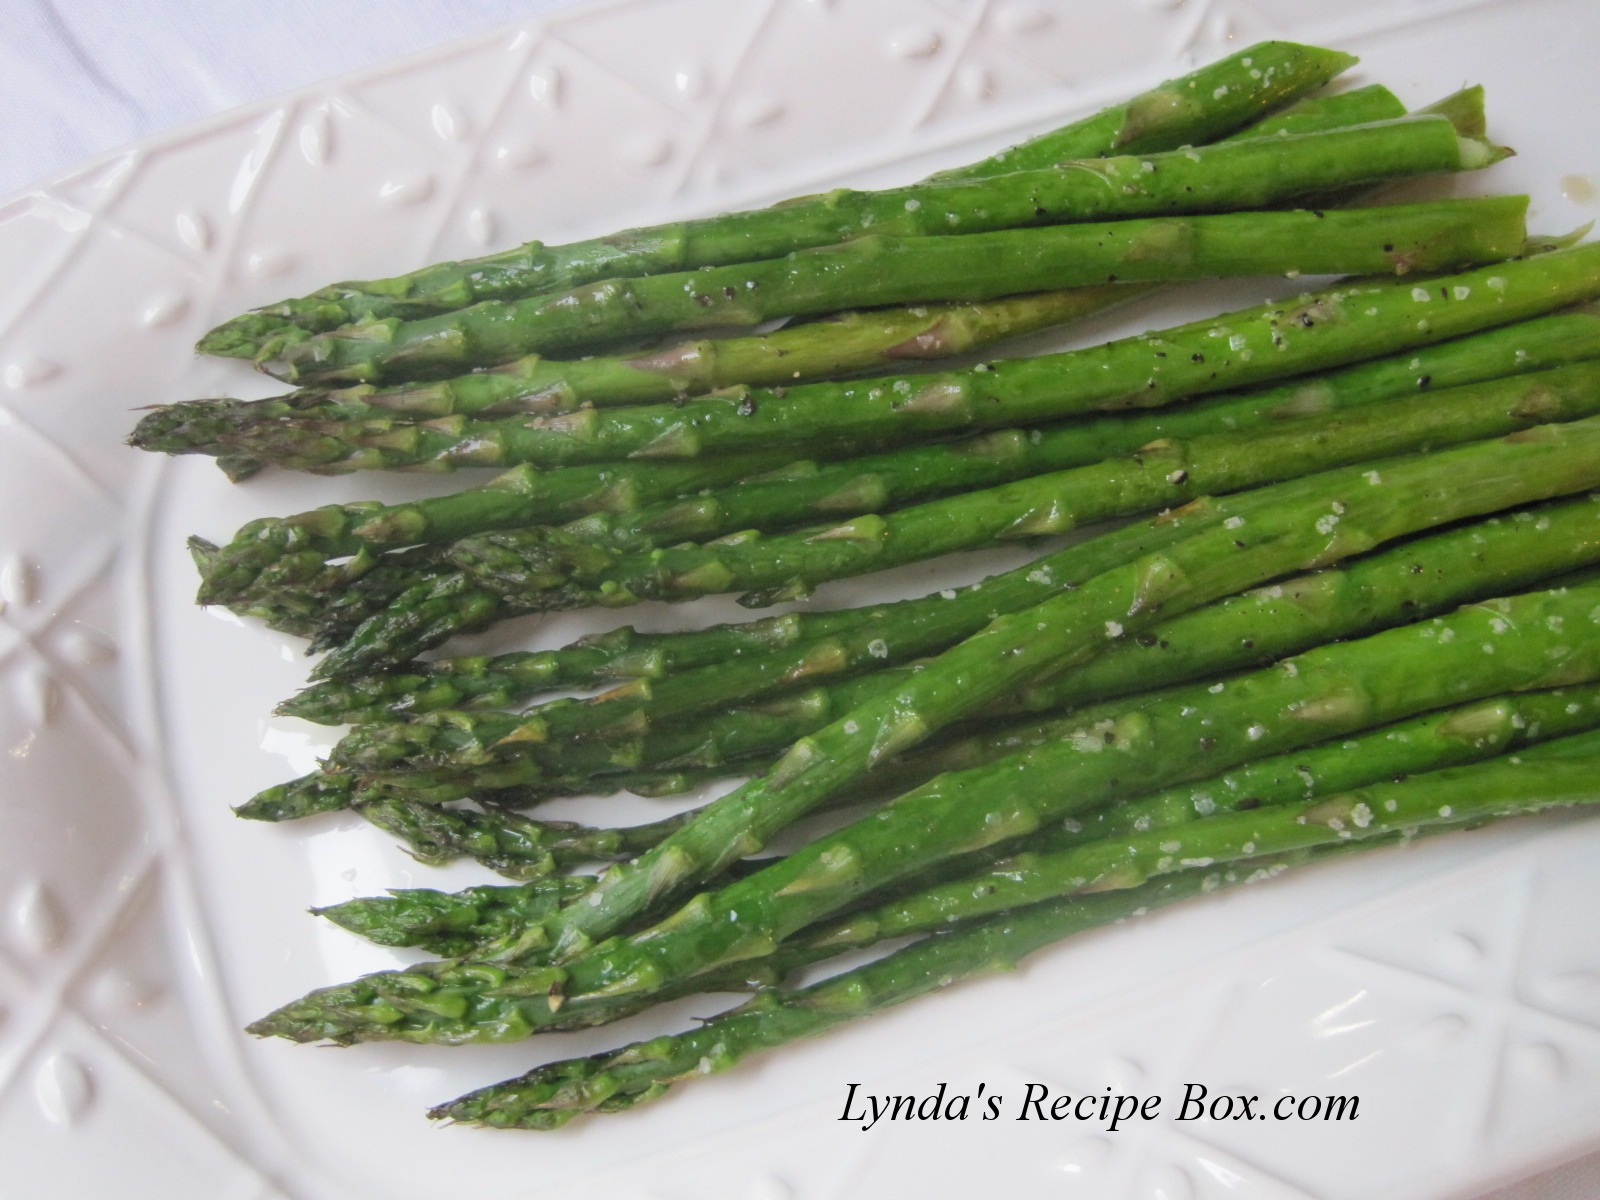 Lynda's Recipe Box: Oven Roasted Asparagus